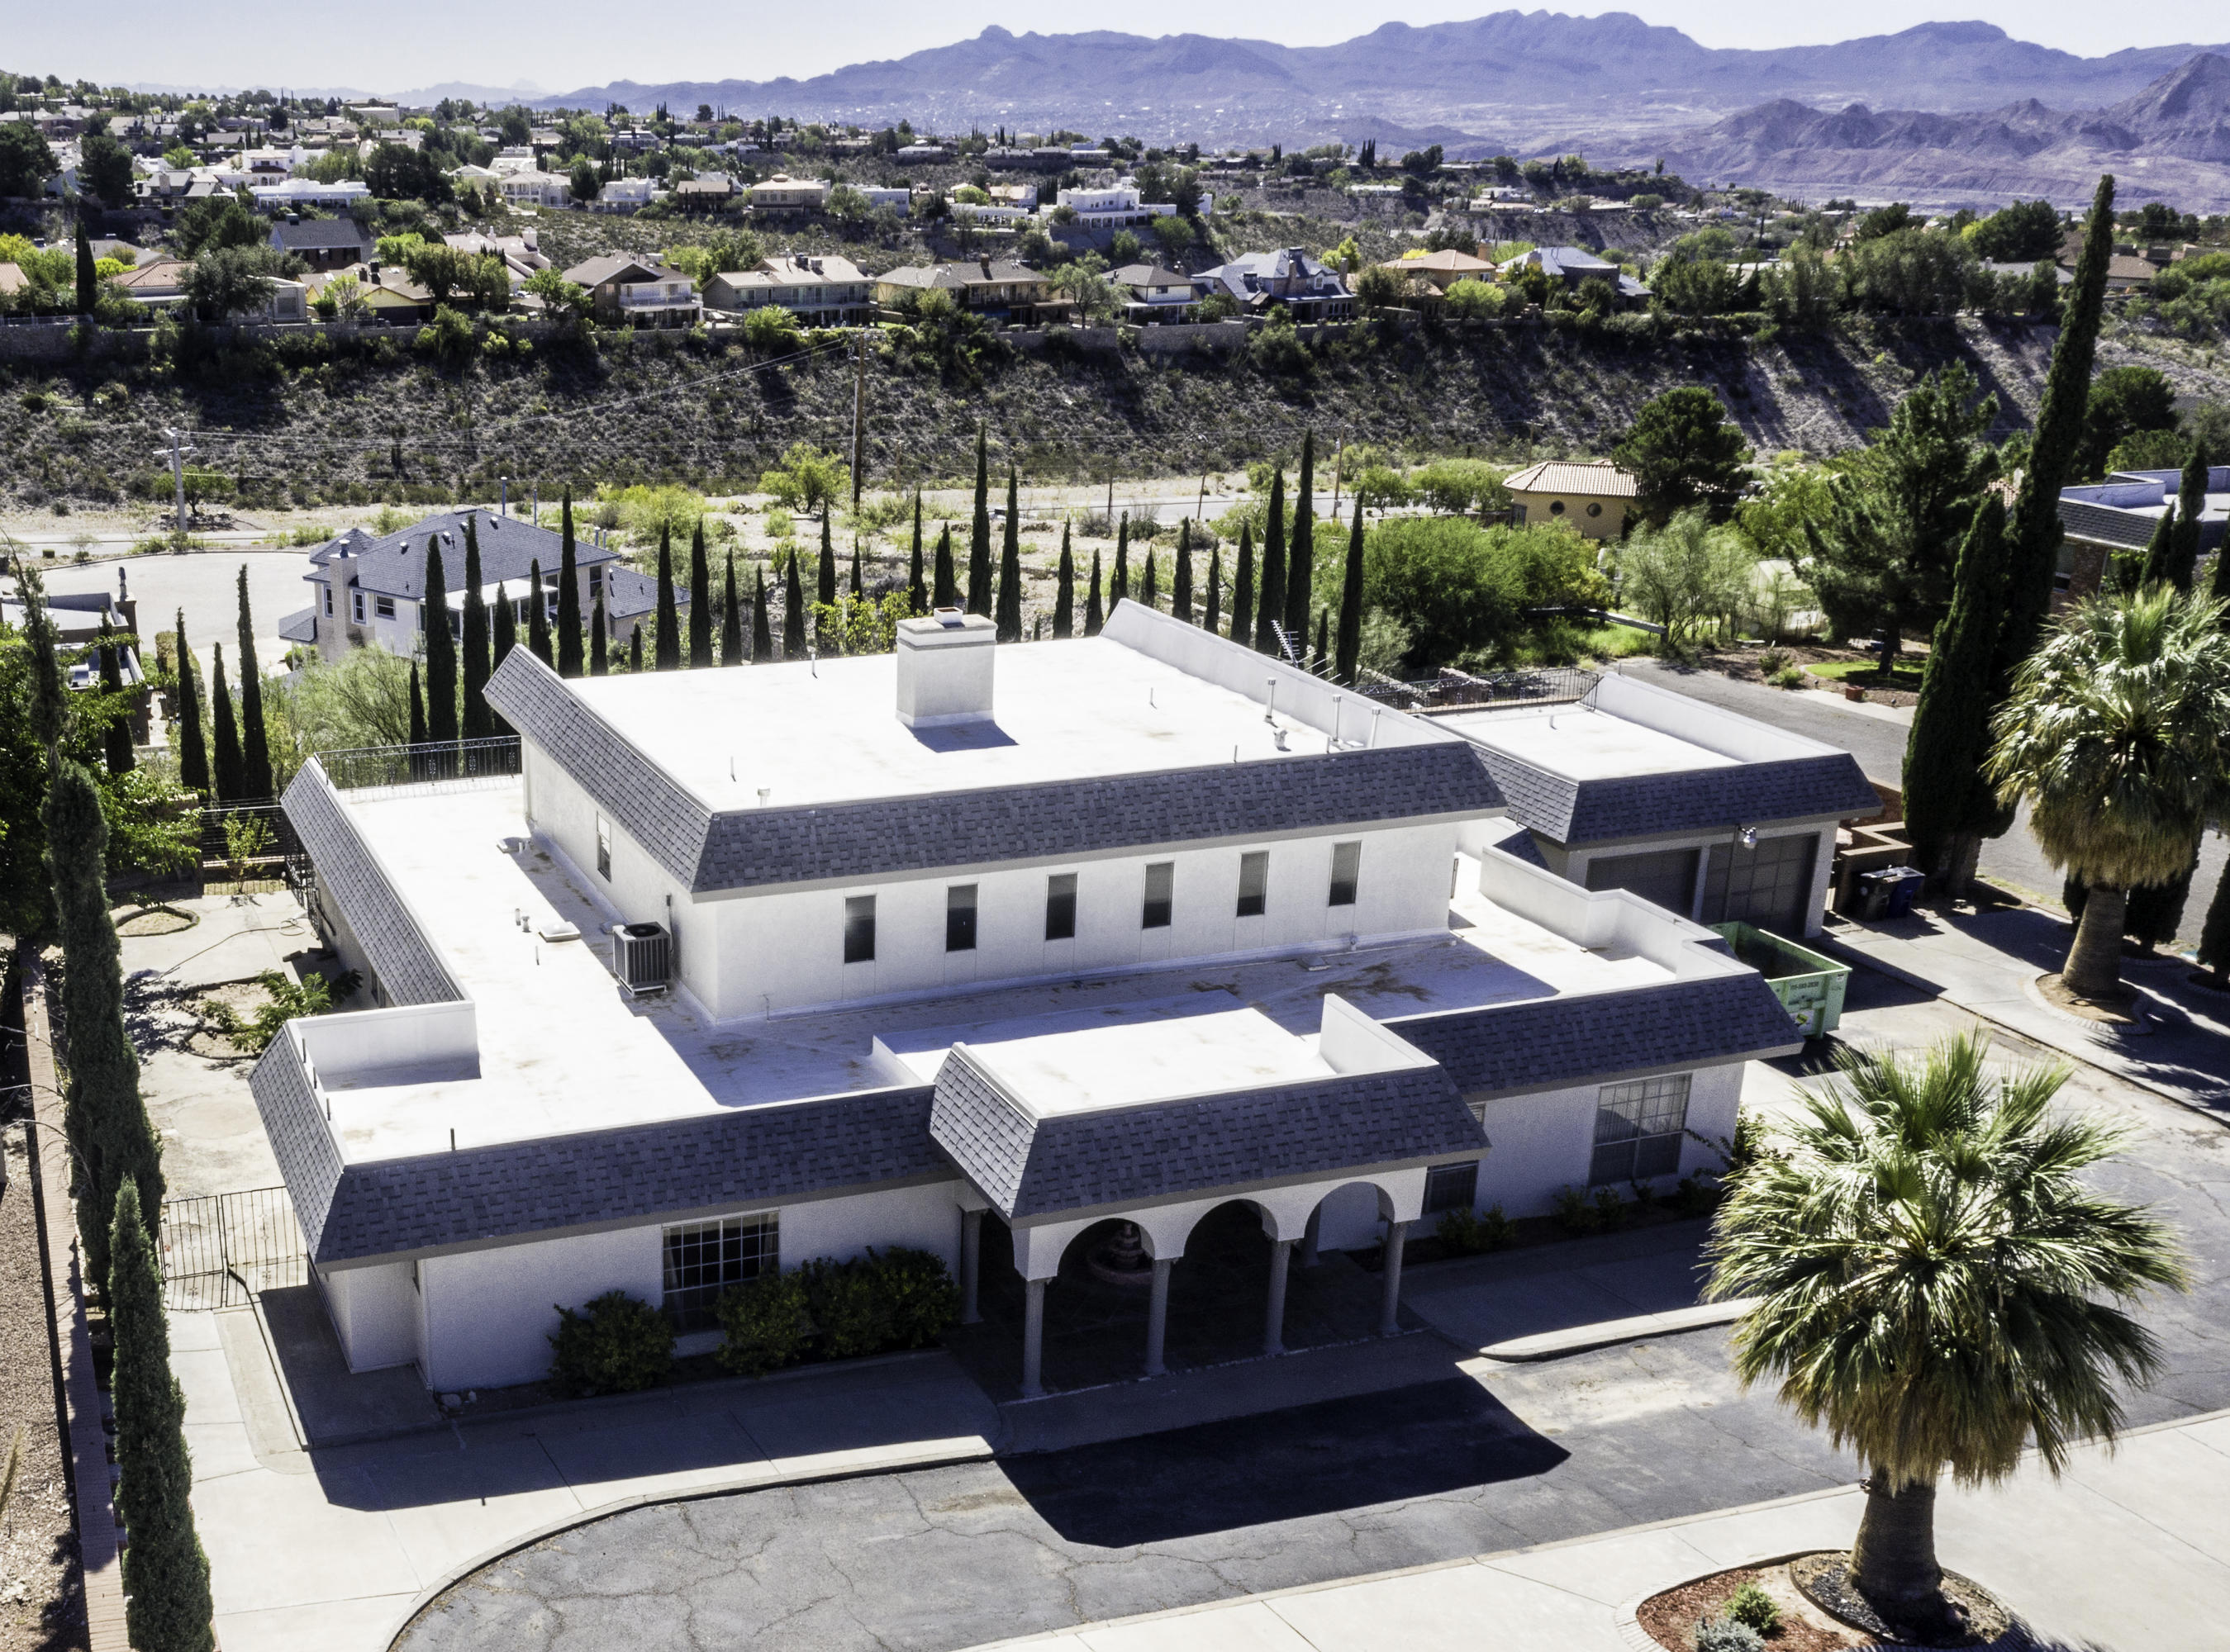 800 Wingfoote, El Paso, Texas 79912, 6 Bedrooms Bedrooms, ,6 BathroomsBathrooms,Residential,For sale,Wingfoote,817691